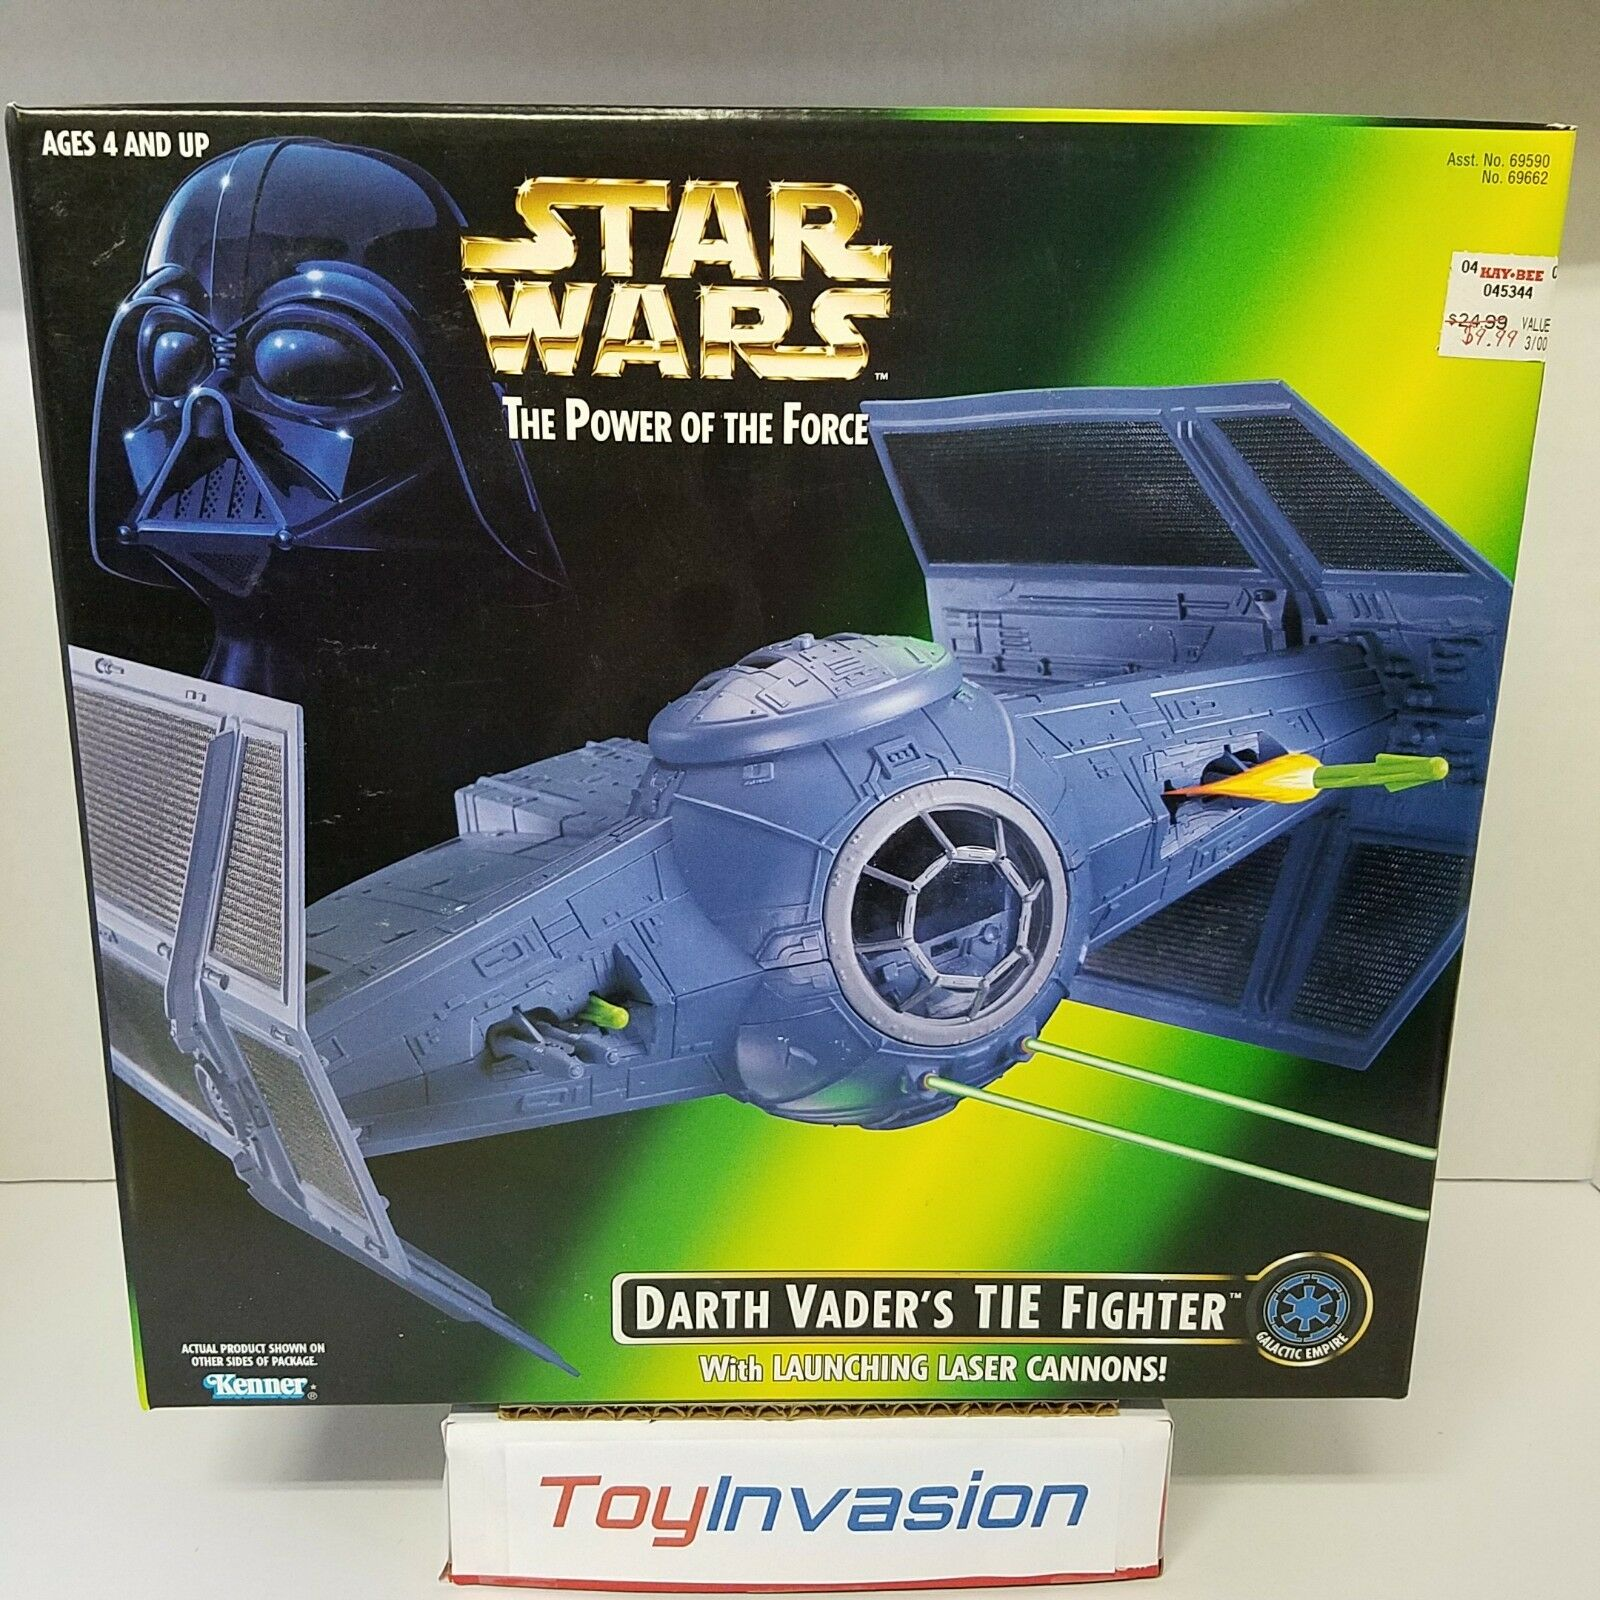 Hasbro 1996 Star Wars Power of the Force Darth Vader's Tie Fighter Collectible